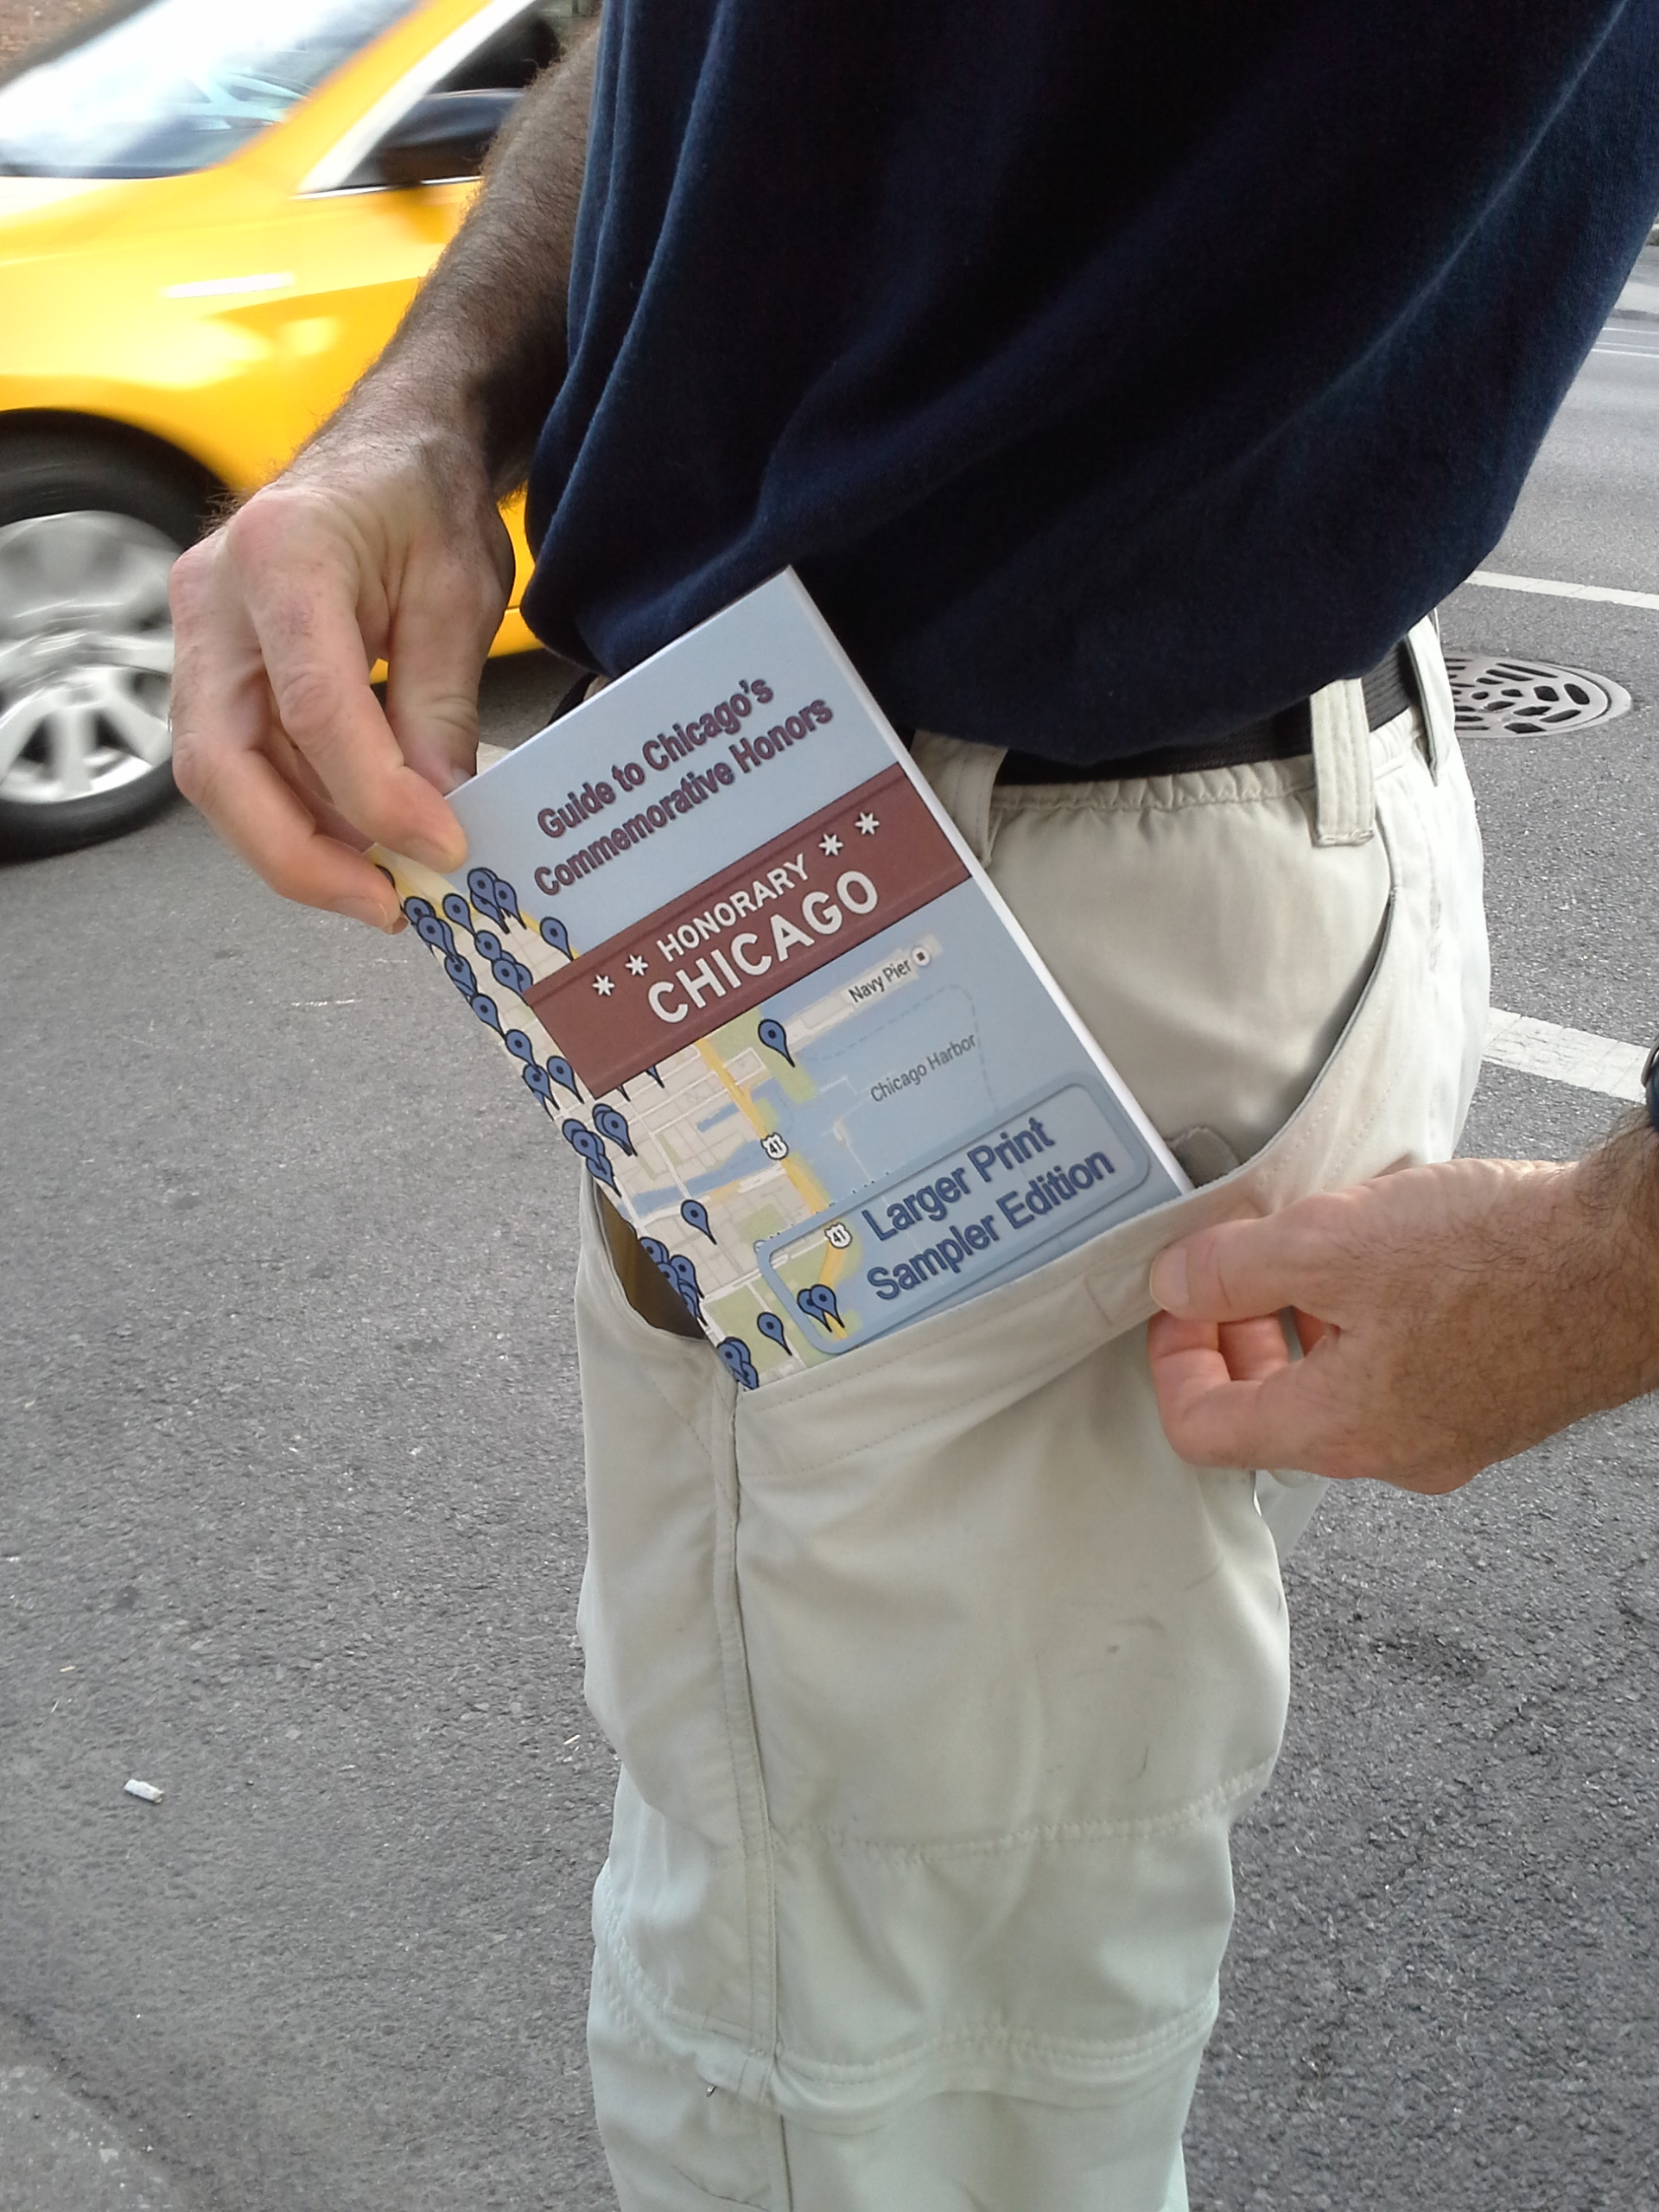 Pocket size, take the Honorary Chicago Guidebook with you. Read it while strolling down Michigan Avenue or at home in your favorite chair.